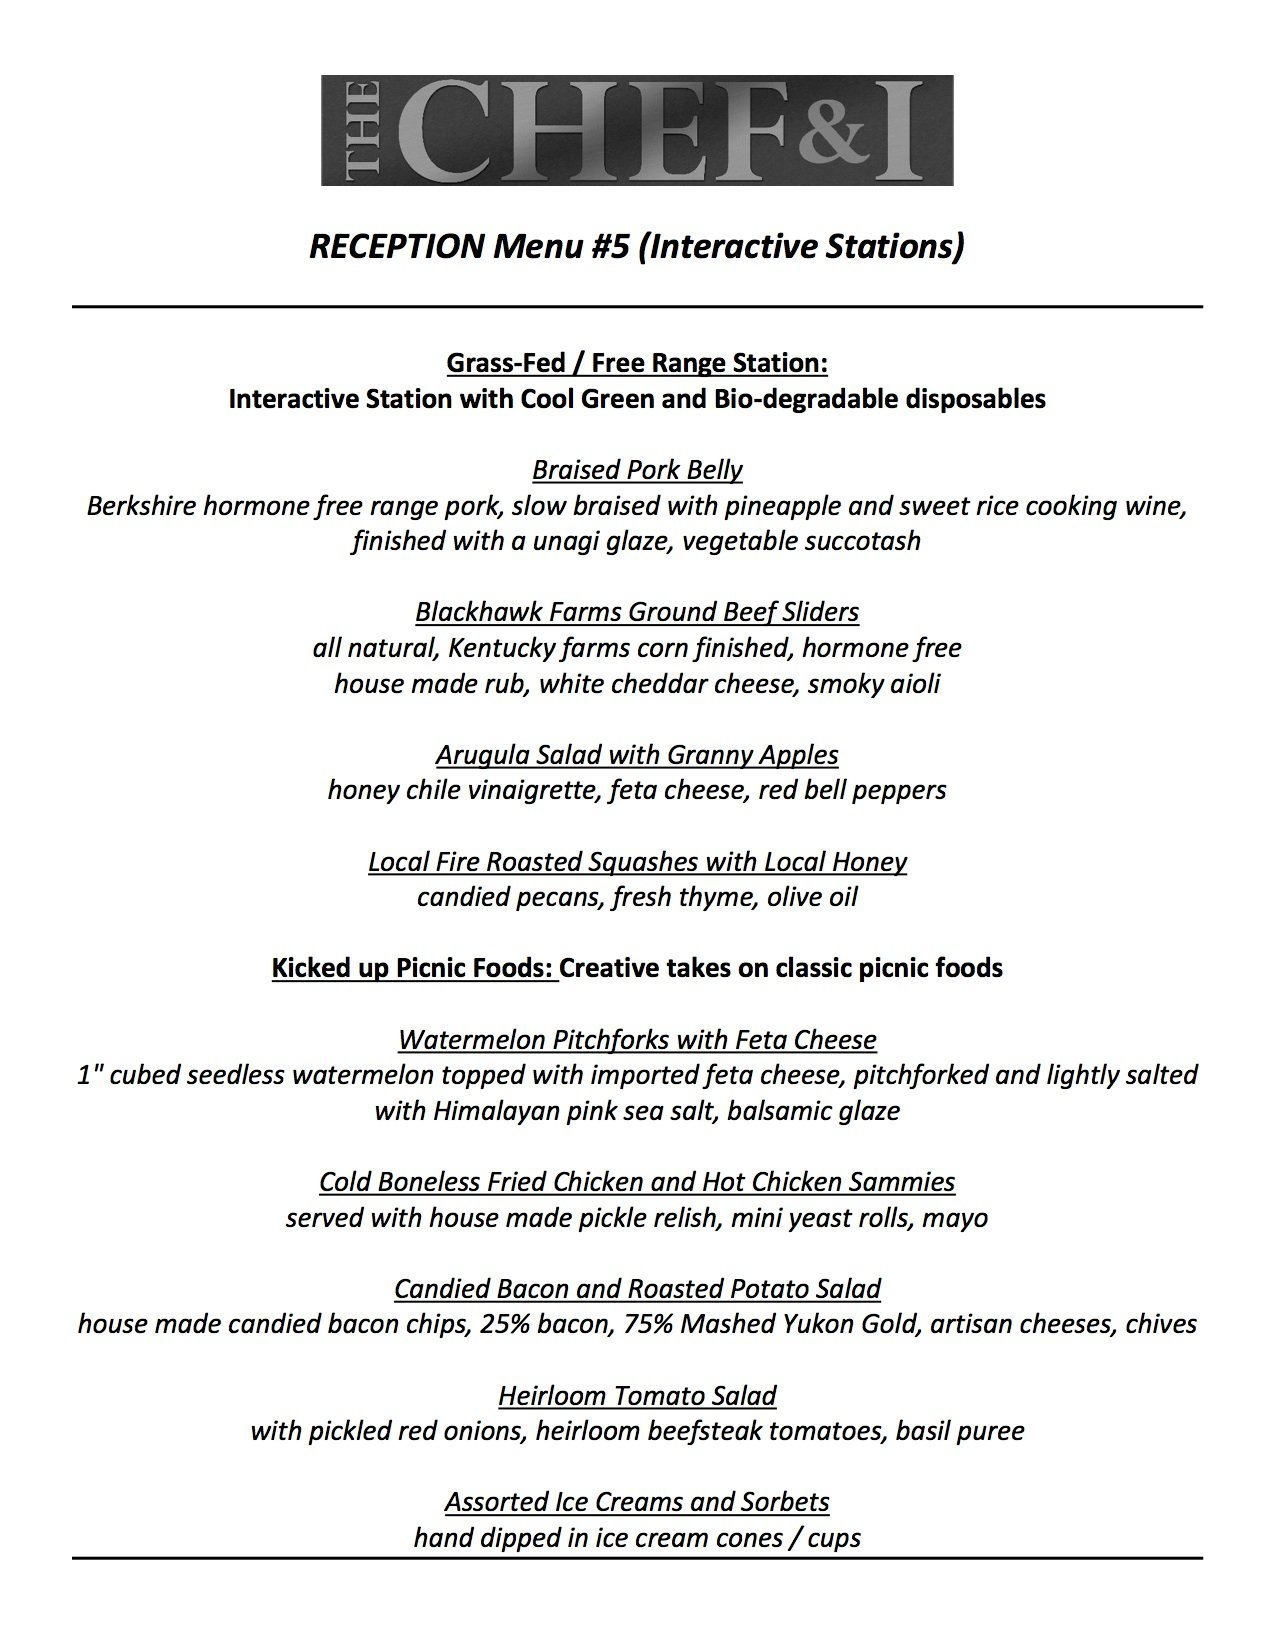 Reception Menu 5